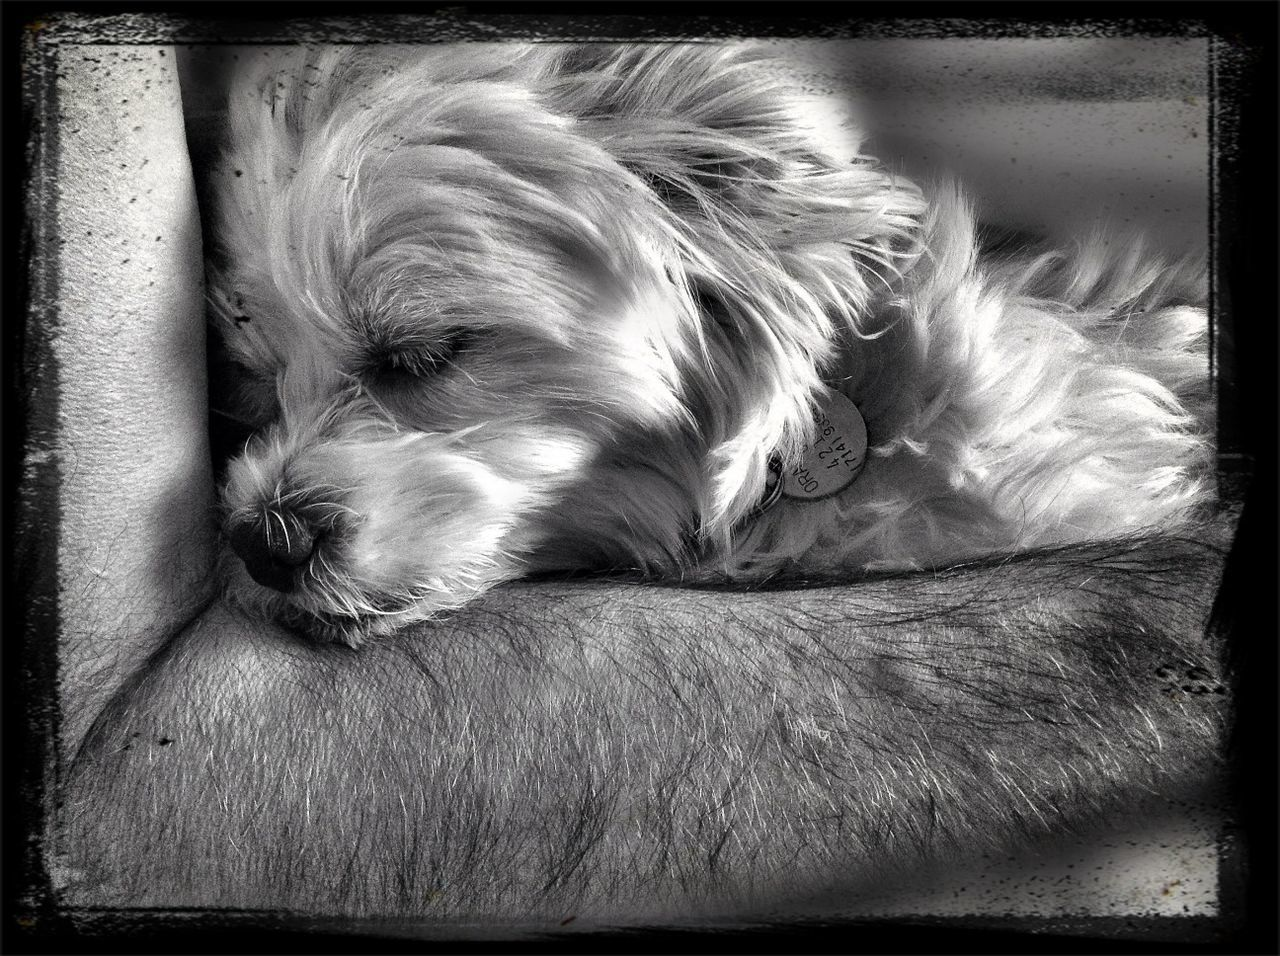 dog, pets, one animal, animal themes, domestic animals, sleeping, mammal, no people, relaxation, close-up, lying down, indoors, day